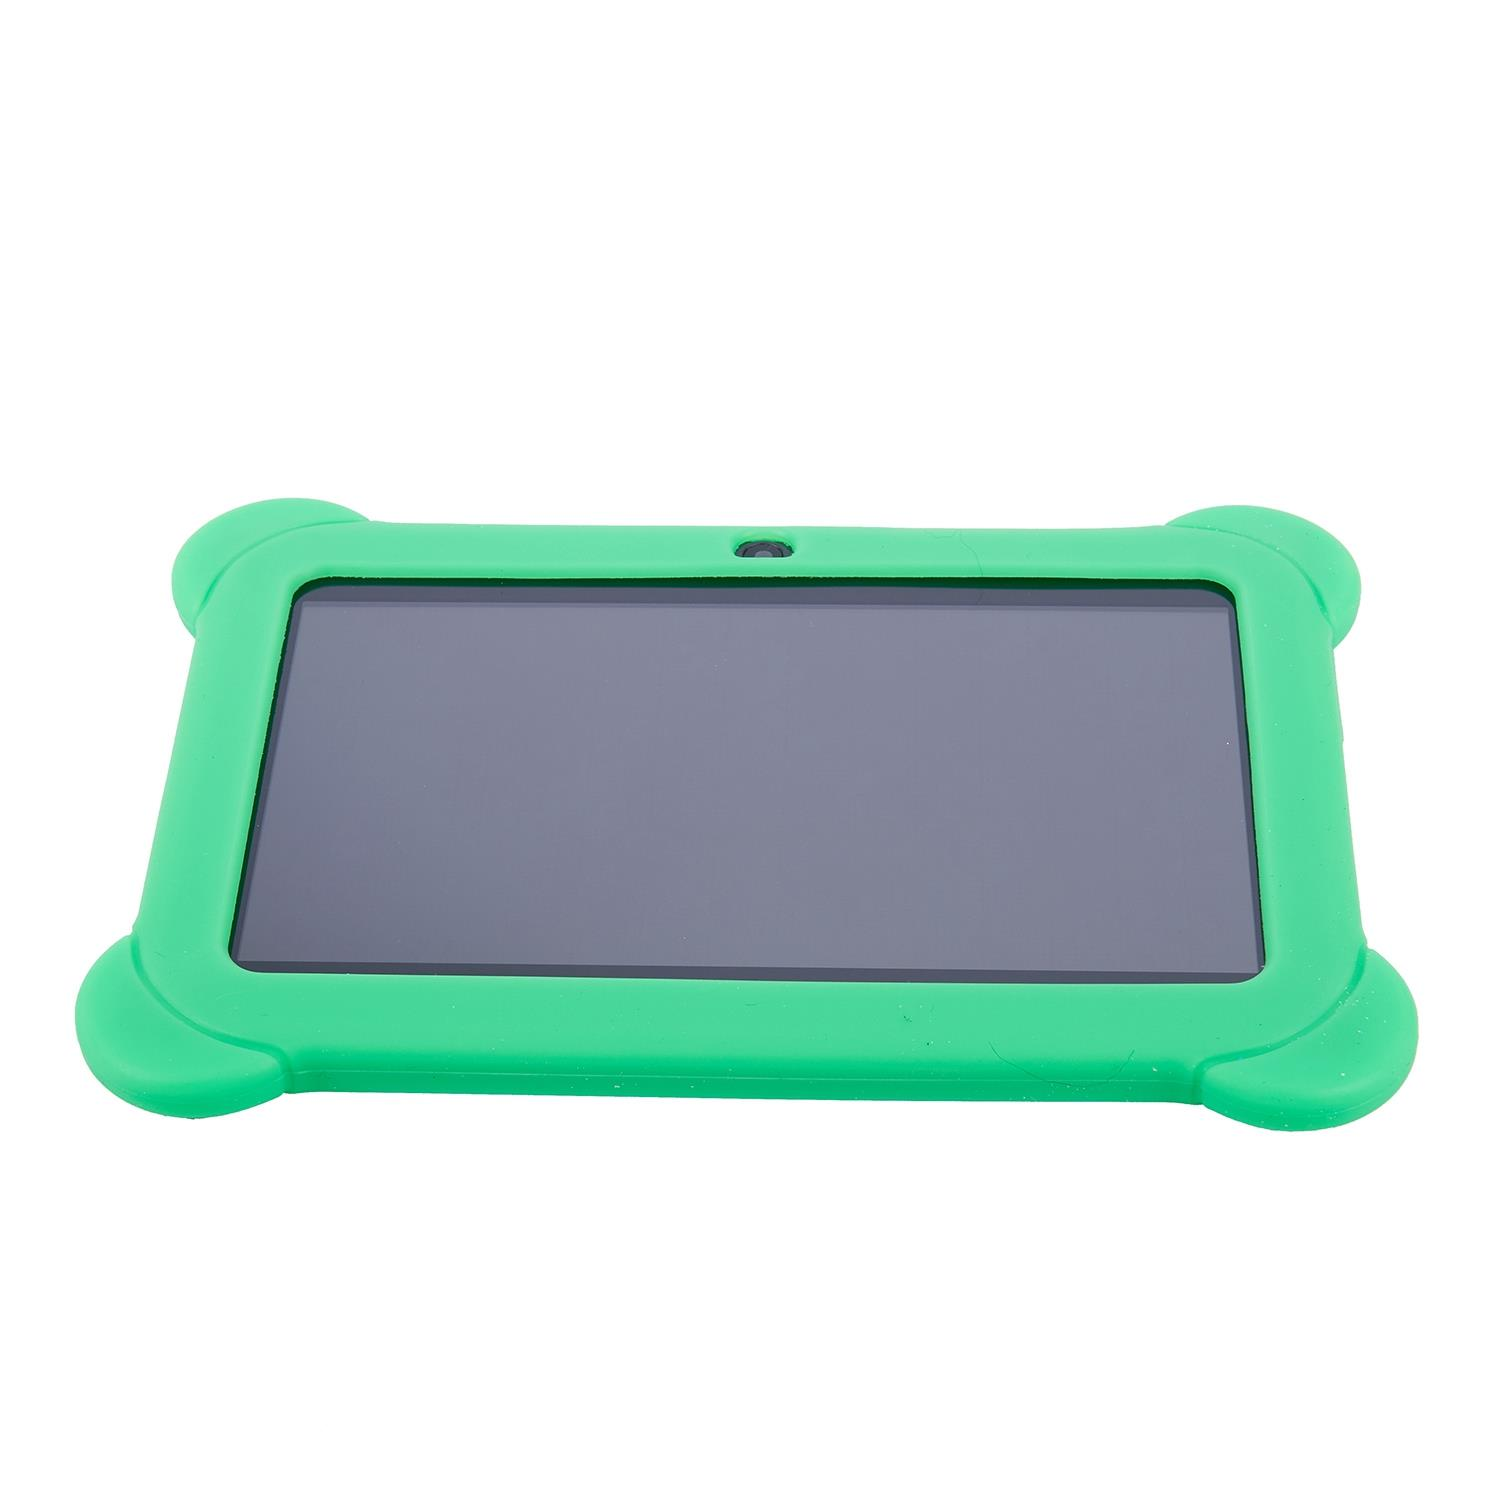 4GB Android 4.4 Wi-Fi Tablet PC Beautiful 7 inch Five-Point Multitouch Display - Special Kids Edition4GB Android 4.4 Wi-Fi Tablet PC Beautiful 7 inch Five-Point Multitouch Display - Special Kids Edition